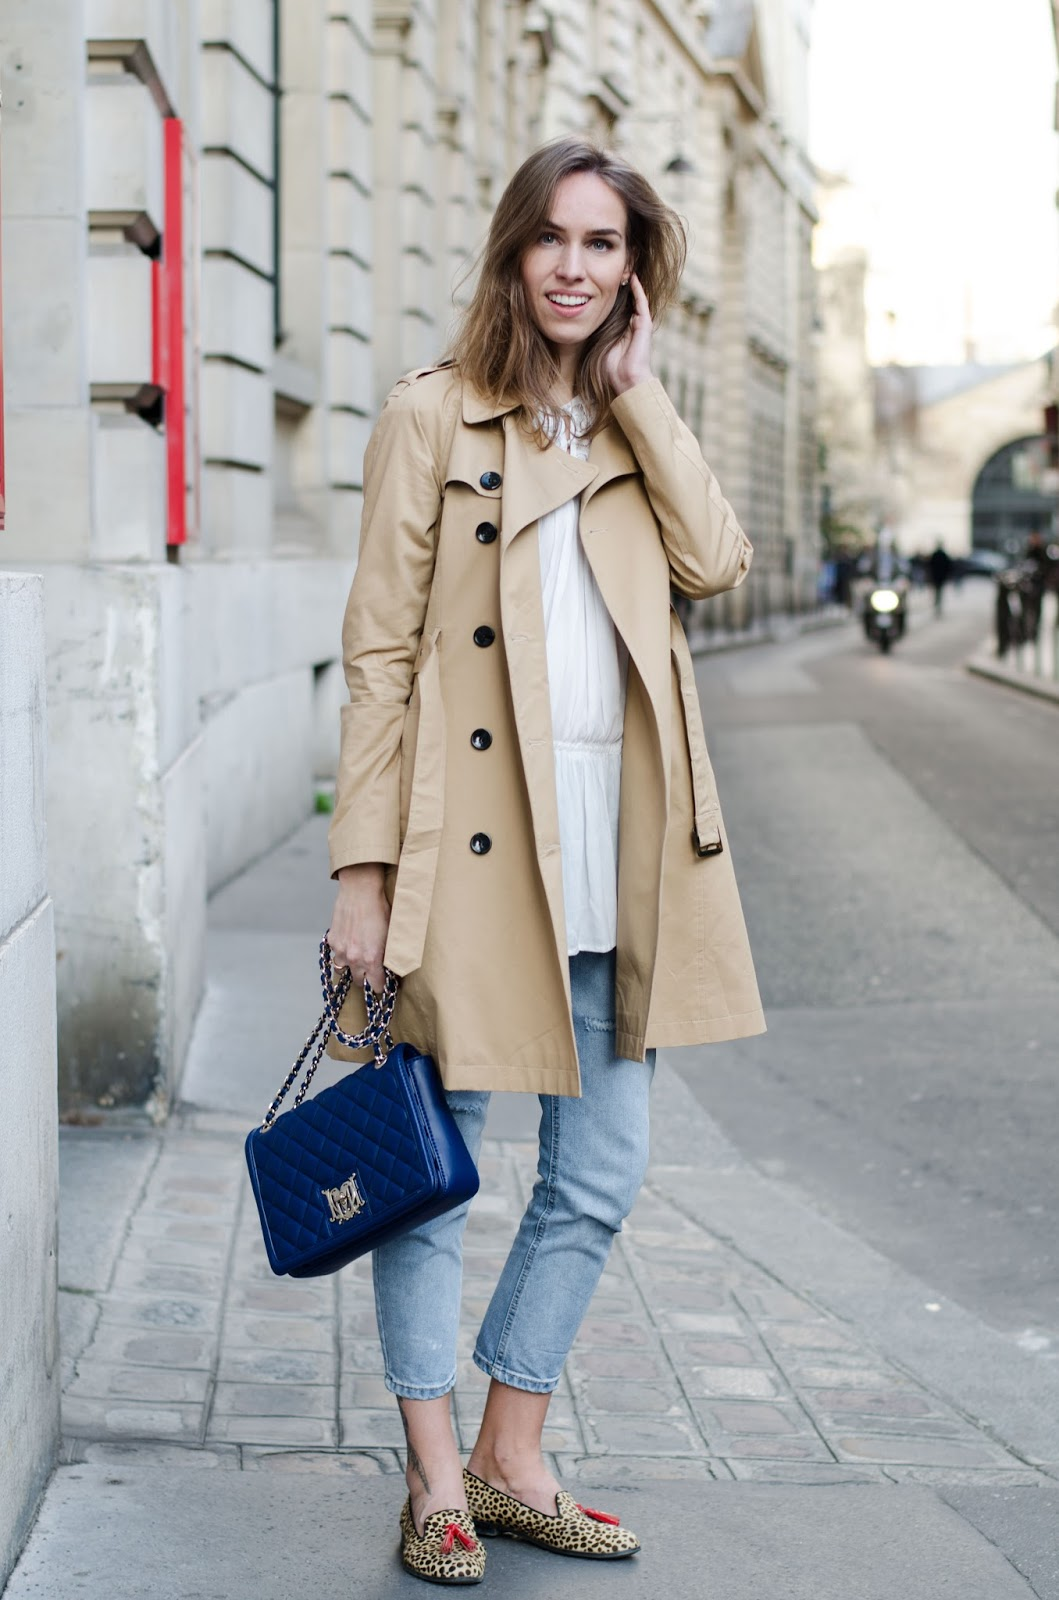 kristjaana mere beige trench coat cropped jeans